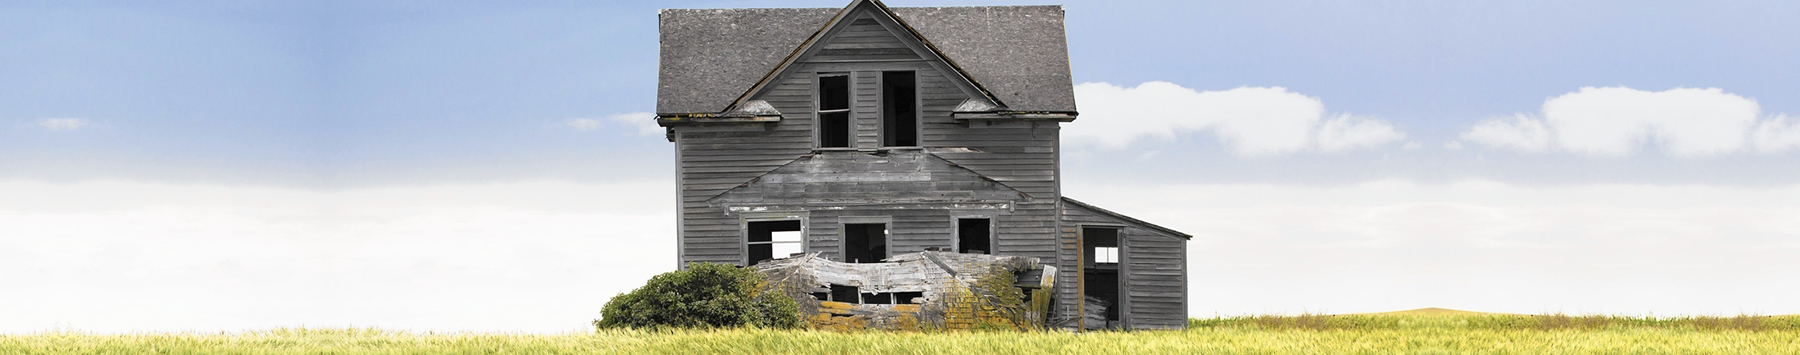 Old-House-in-Field